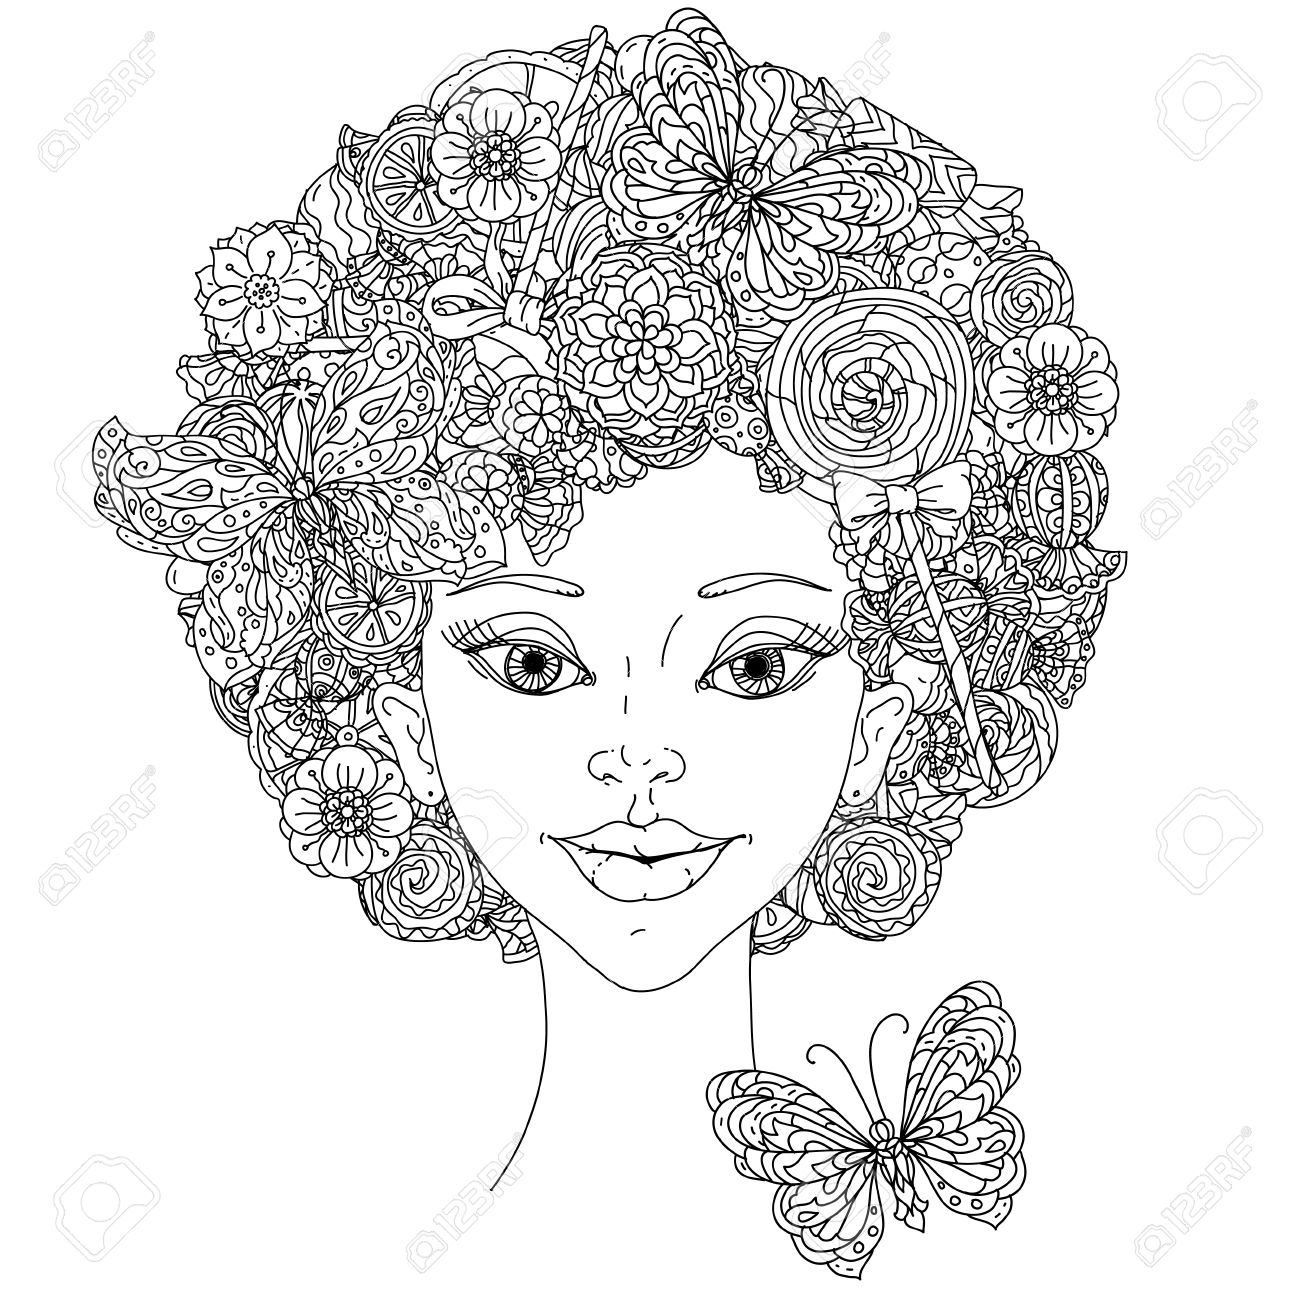 Uncoloured Woman And Butterfly For Adult Coloring Book In Famous Zenart Art Therapy Antistress Style